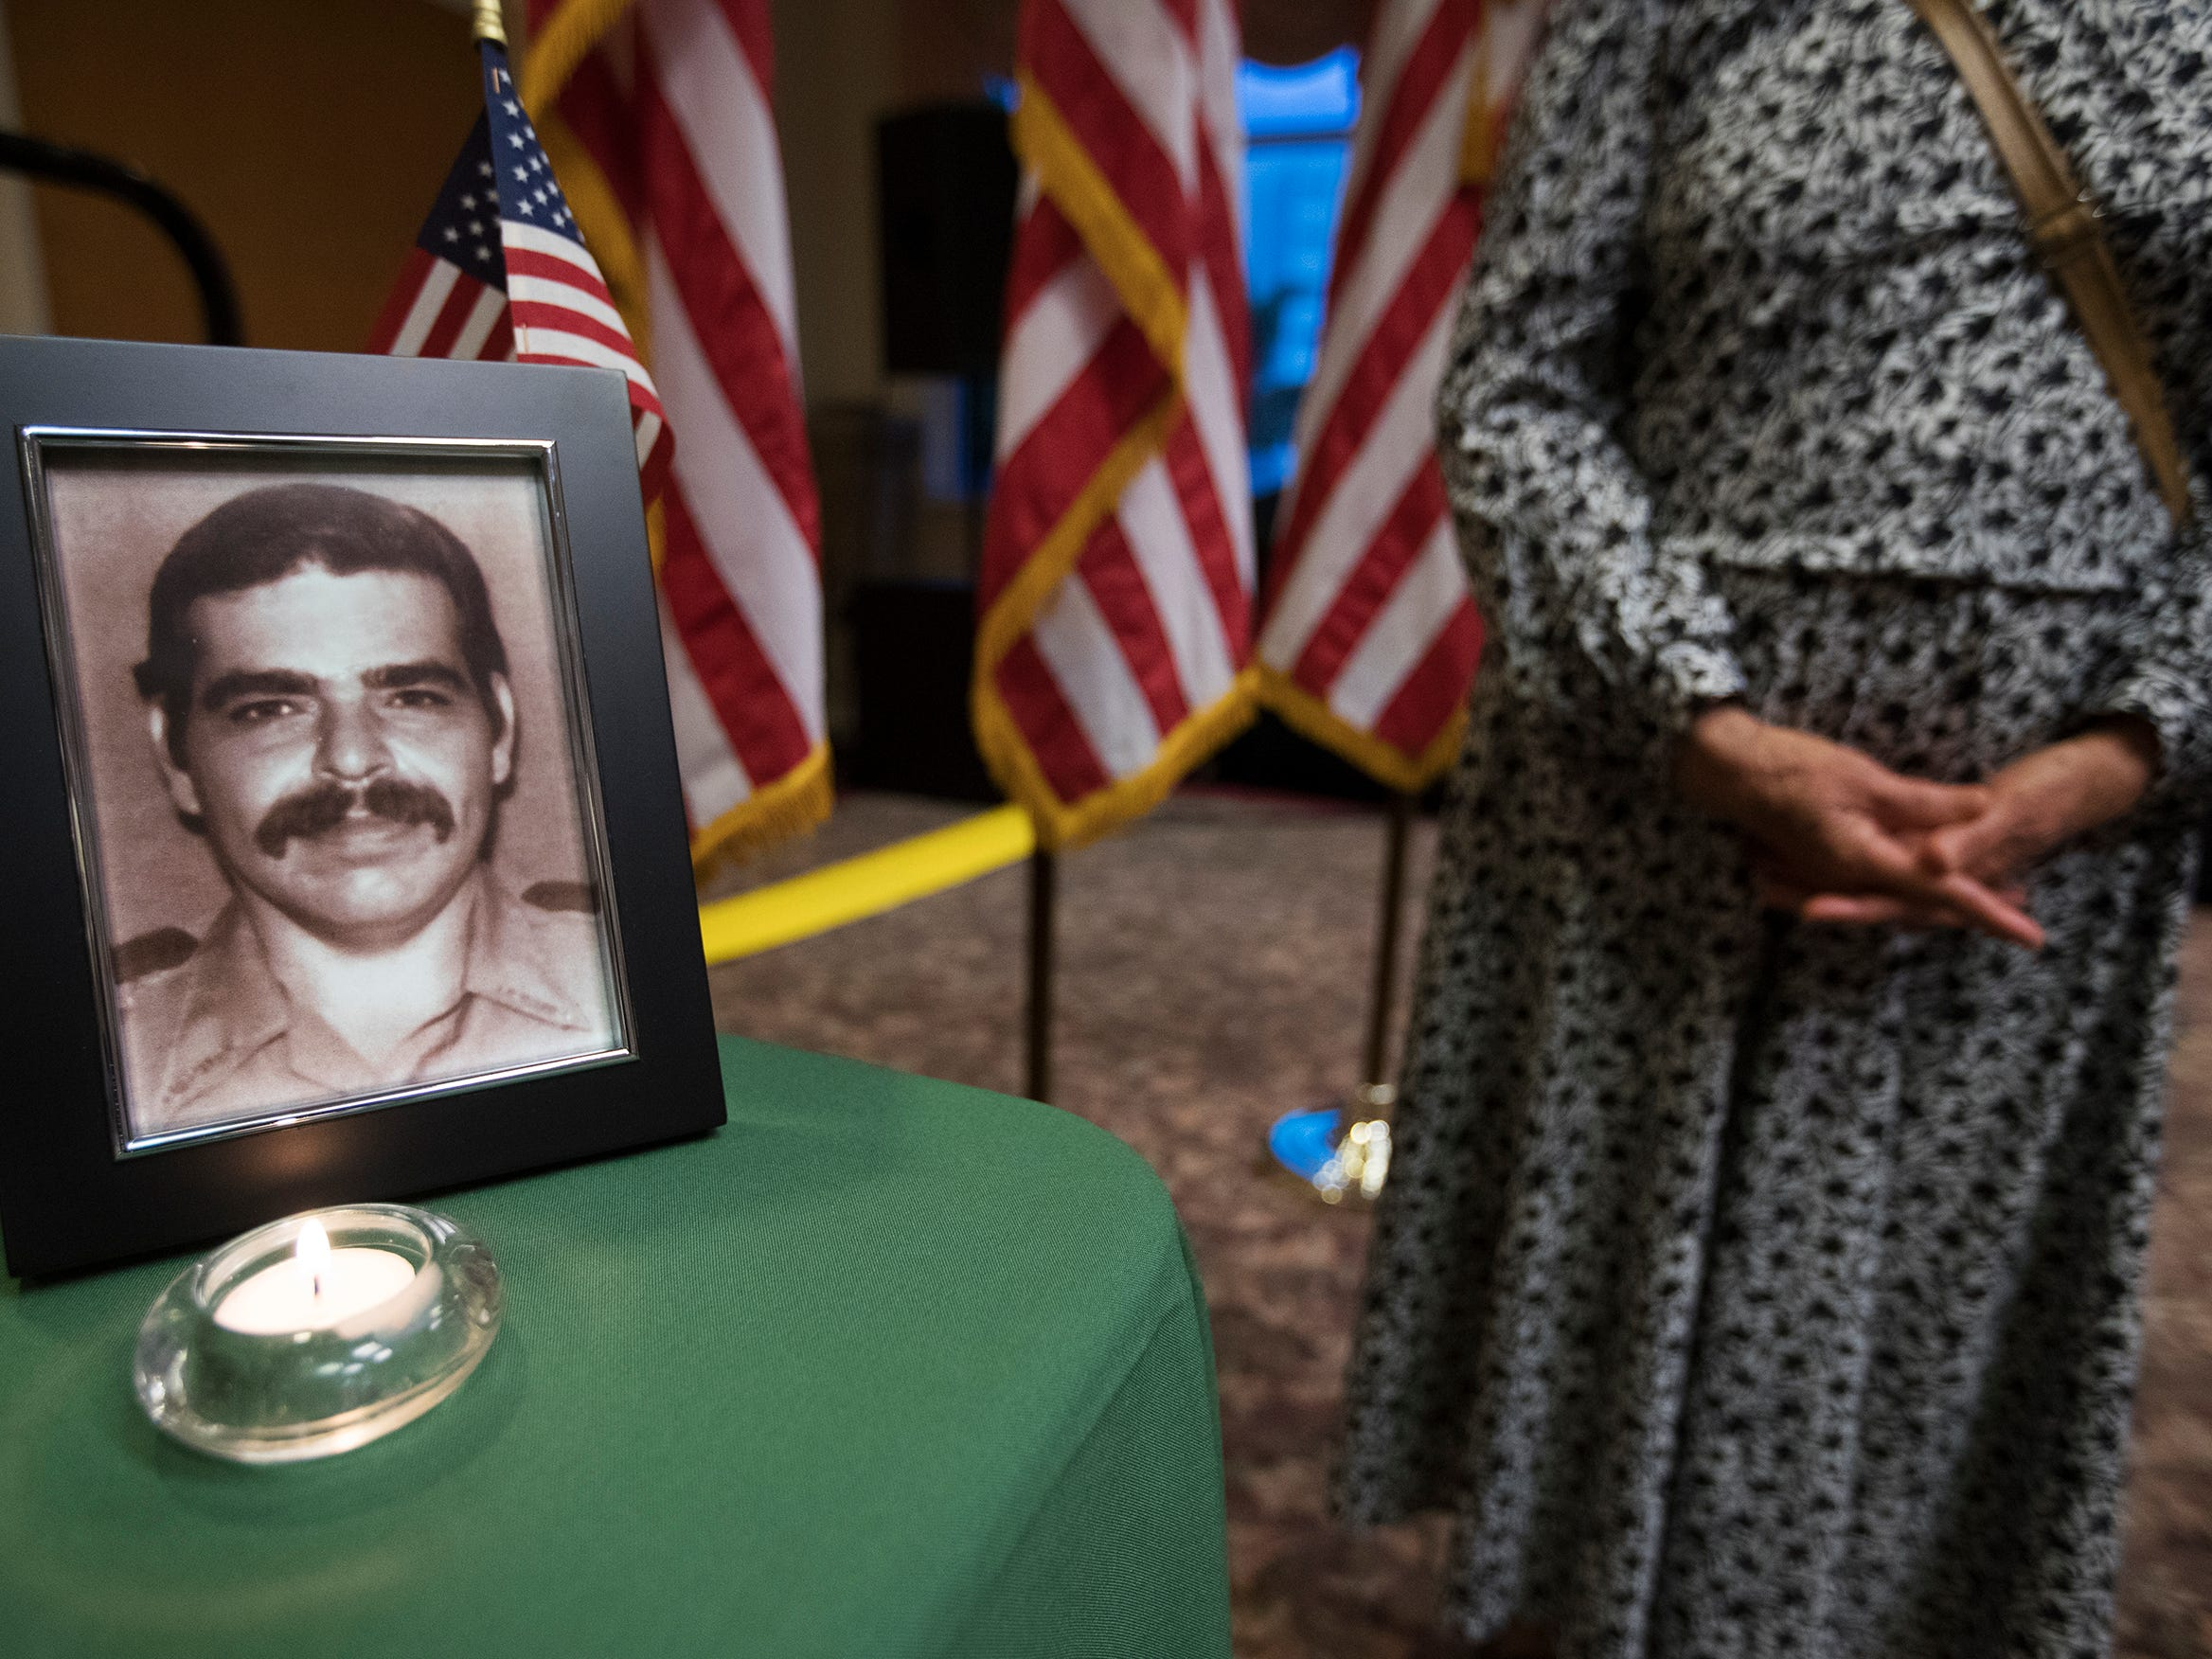 """Deputy Raul """"Rudy"""" Dimas Sr., of the Collier County Sheriff's Office, was among the local law enforcement officers killed in the line of duty, that were honored at a memorial on Wednesday at East Naples United Methodist Church. Thirteen officers have been killed in Collier County since 1928."""